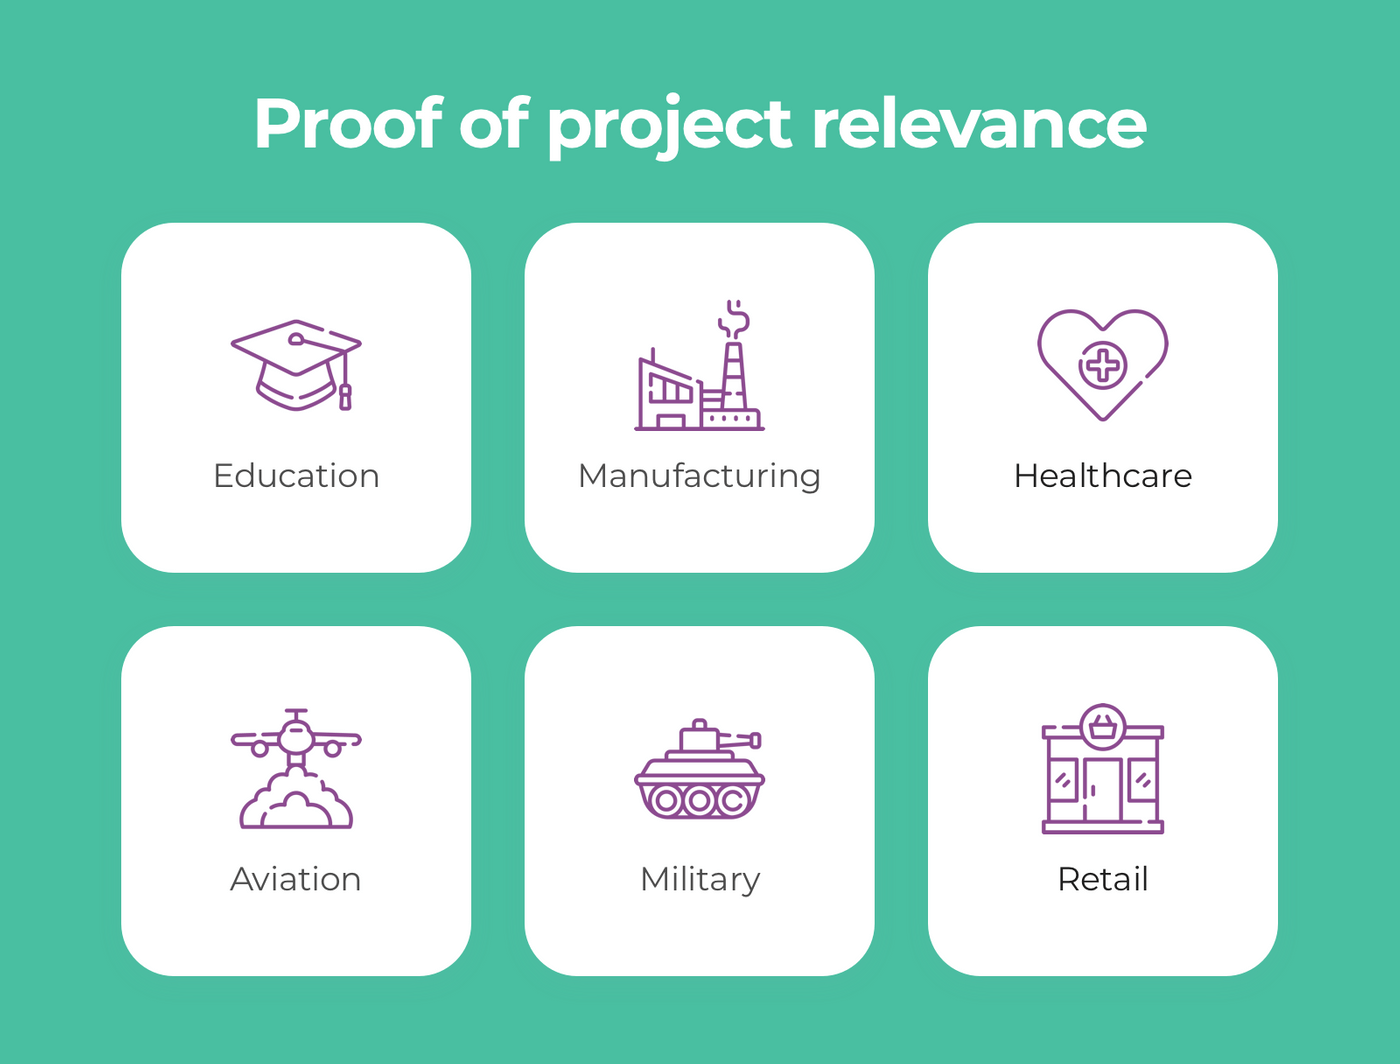 Proof of project relevance